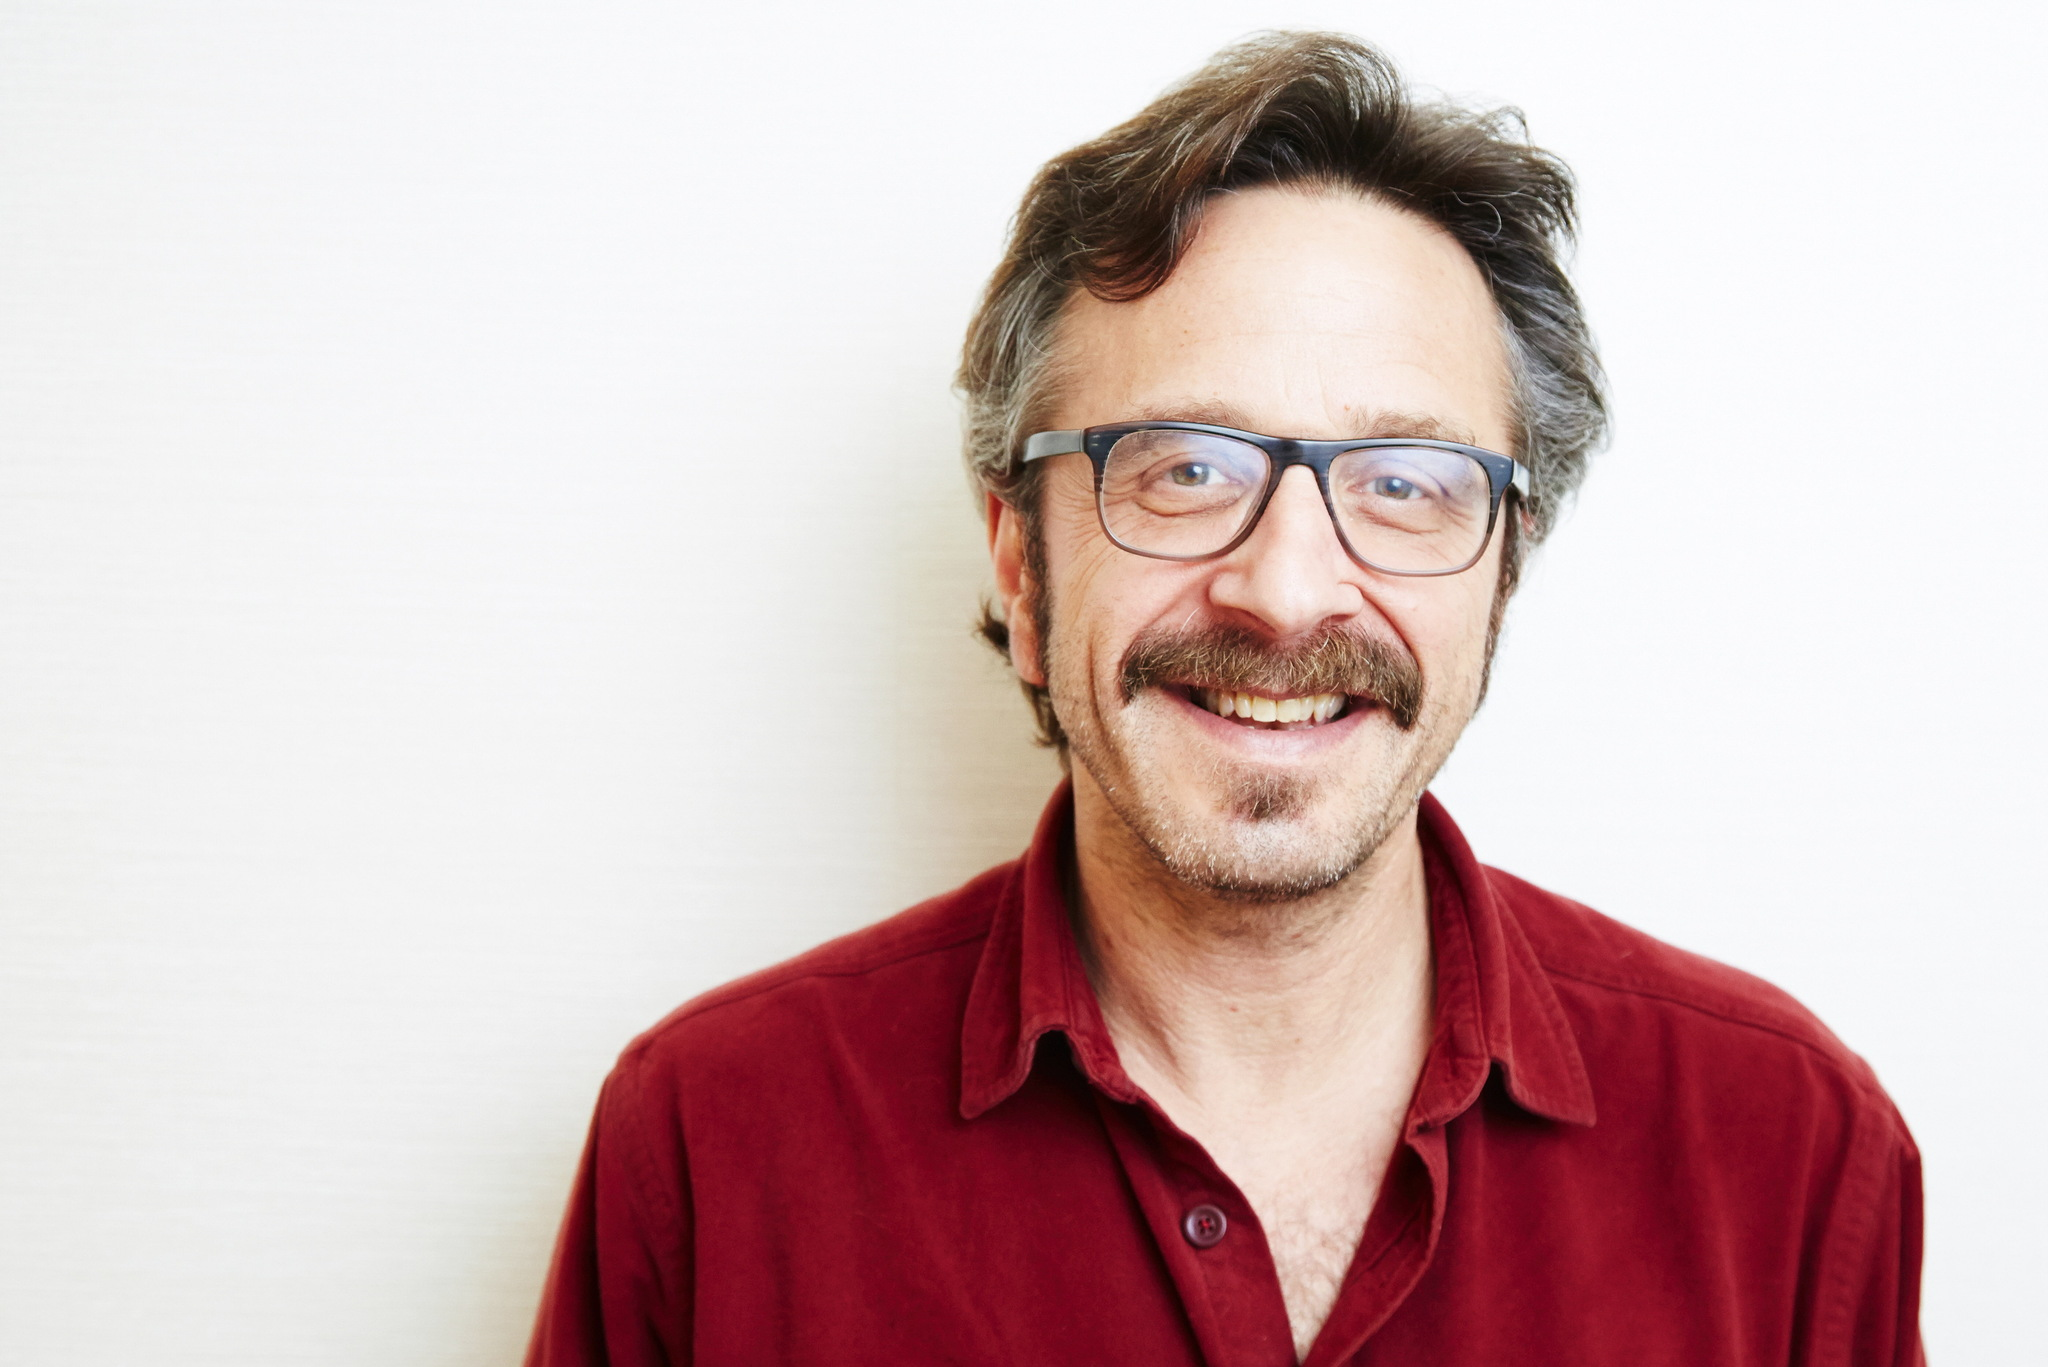 marc maron facebookmarc maron facebook, marc maron show, marc maron billy west, marc maron garage, marc maron grateful dead, marc maron nick thune, marc maron social media, marc maron anthony jeselnik, marc maron radio show, marc maron beard, marc maron glasses, marc maron instagram, marc maron stand up, marc maron twitter, marc maron youtube, marc maron maynard, marc maron quotes, marc maron wiki, marc maron podcast casey affleck